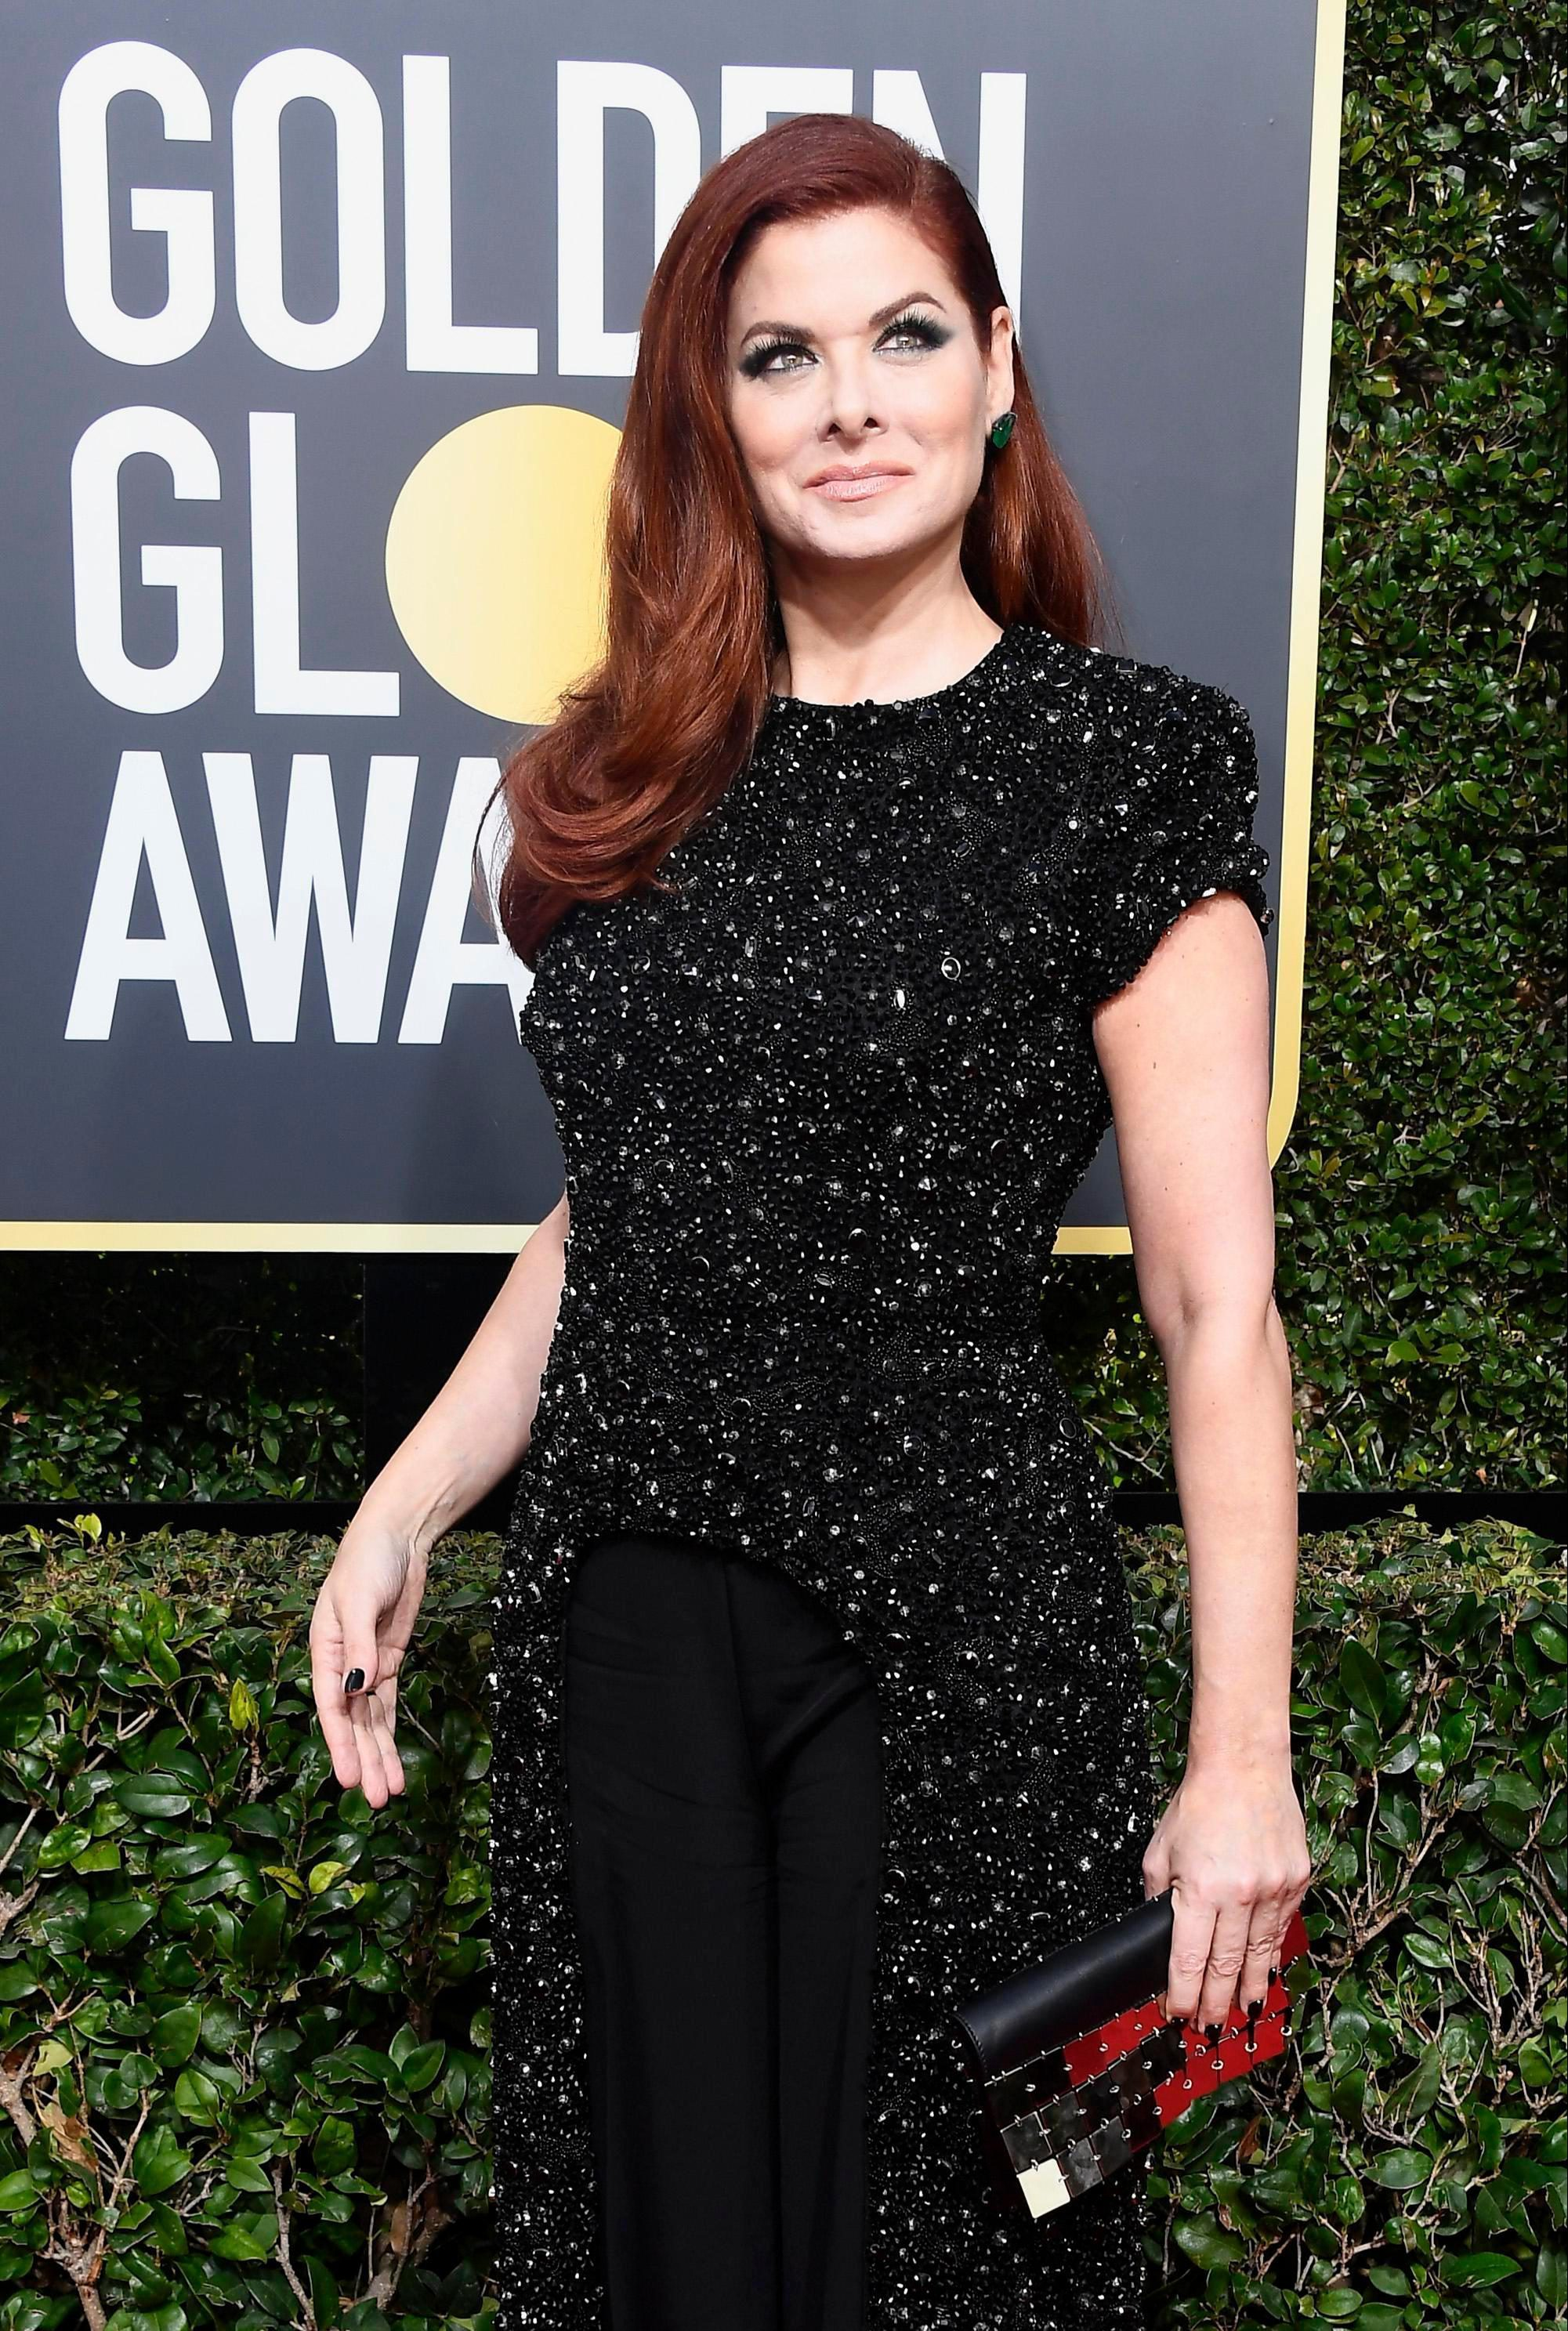 Debra Messing calls out E! for not paying female stars equally while live on E! at the Golden Globes